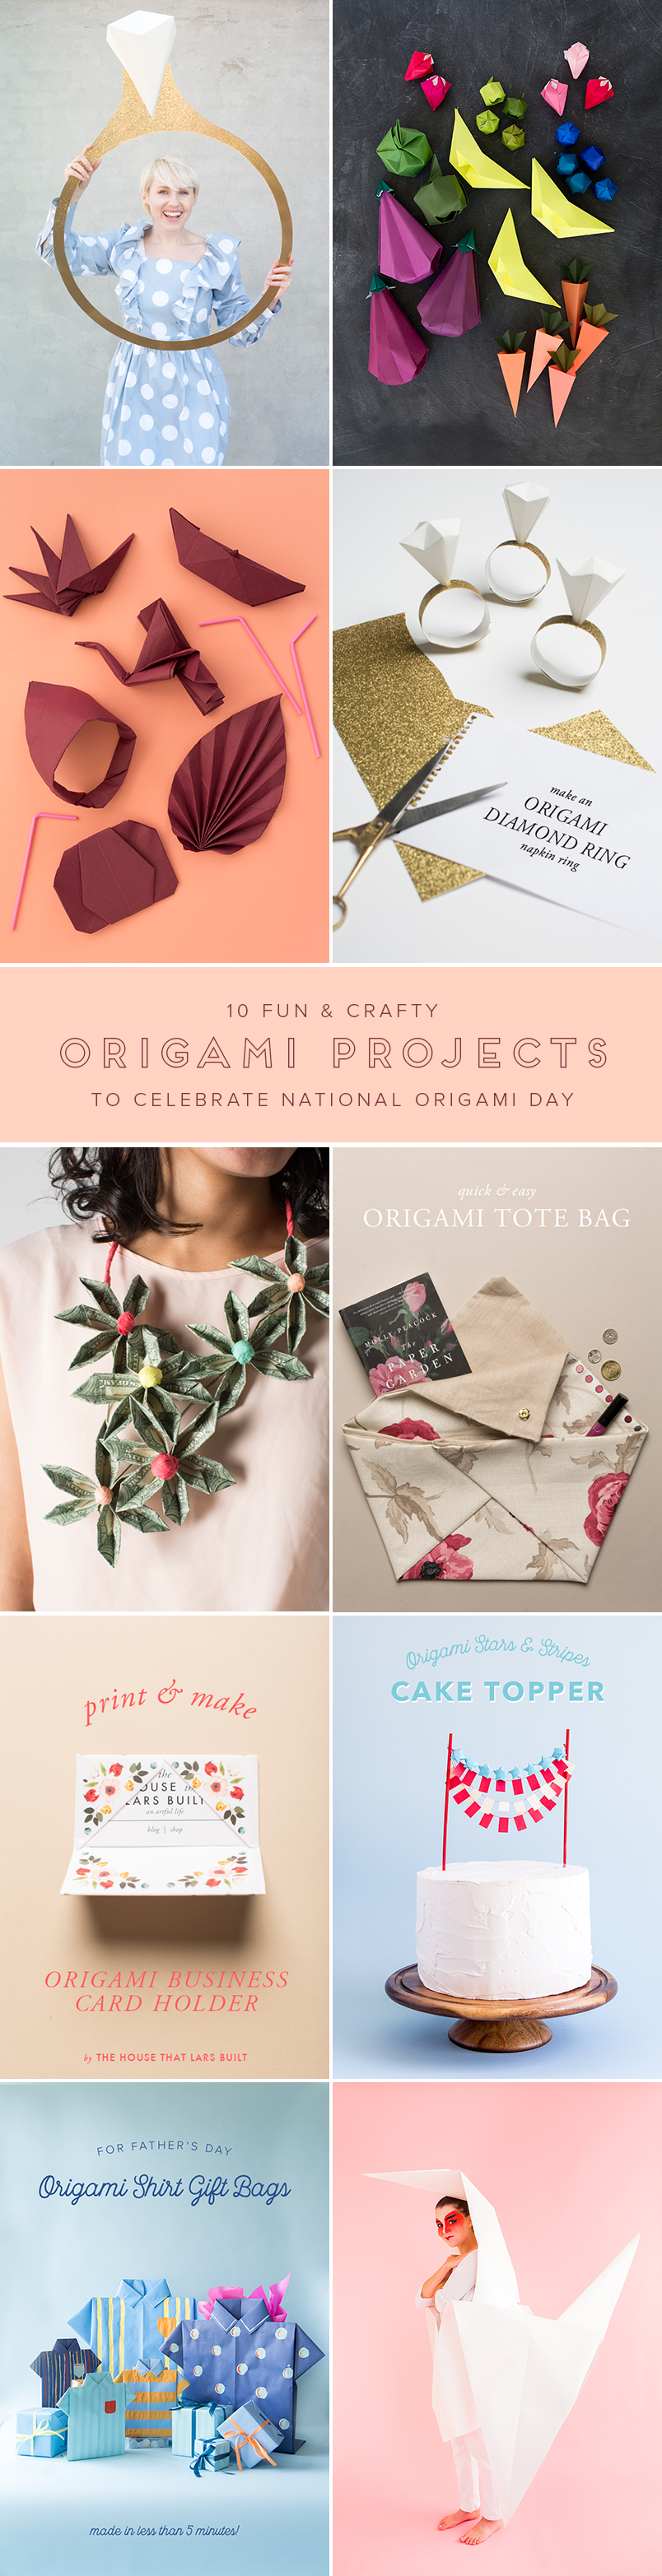 origami-projects